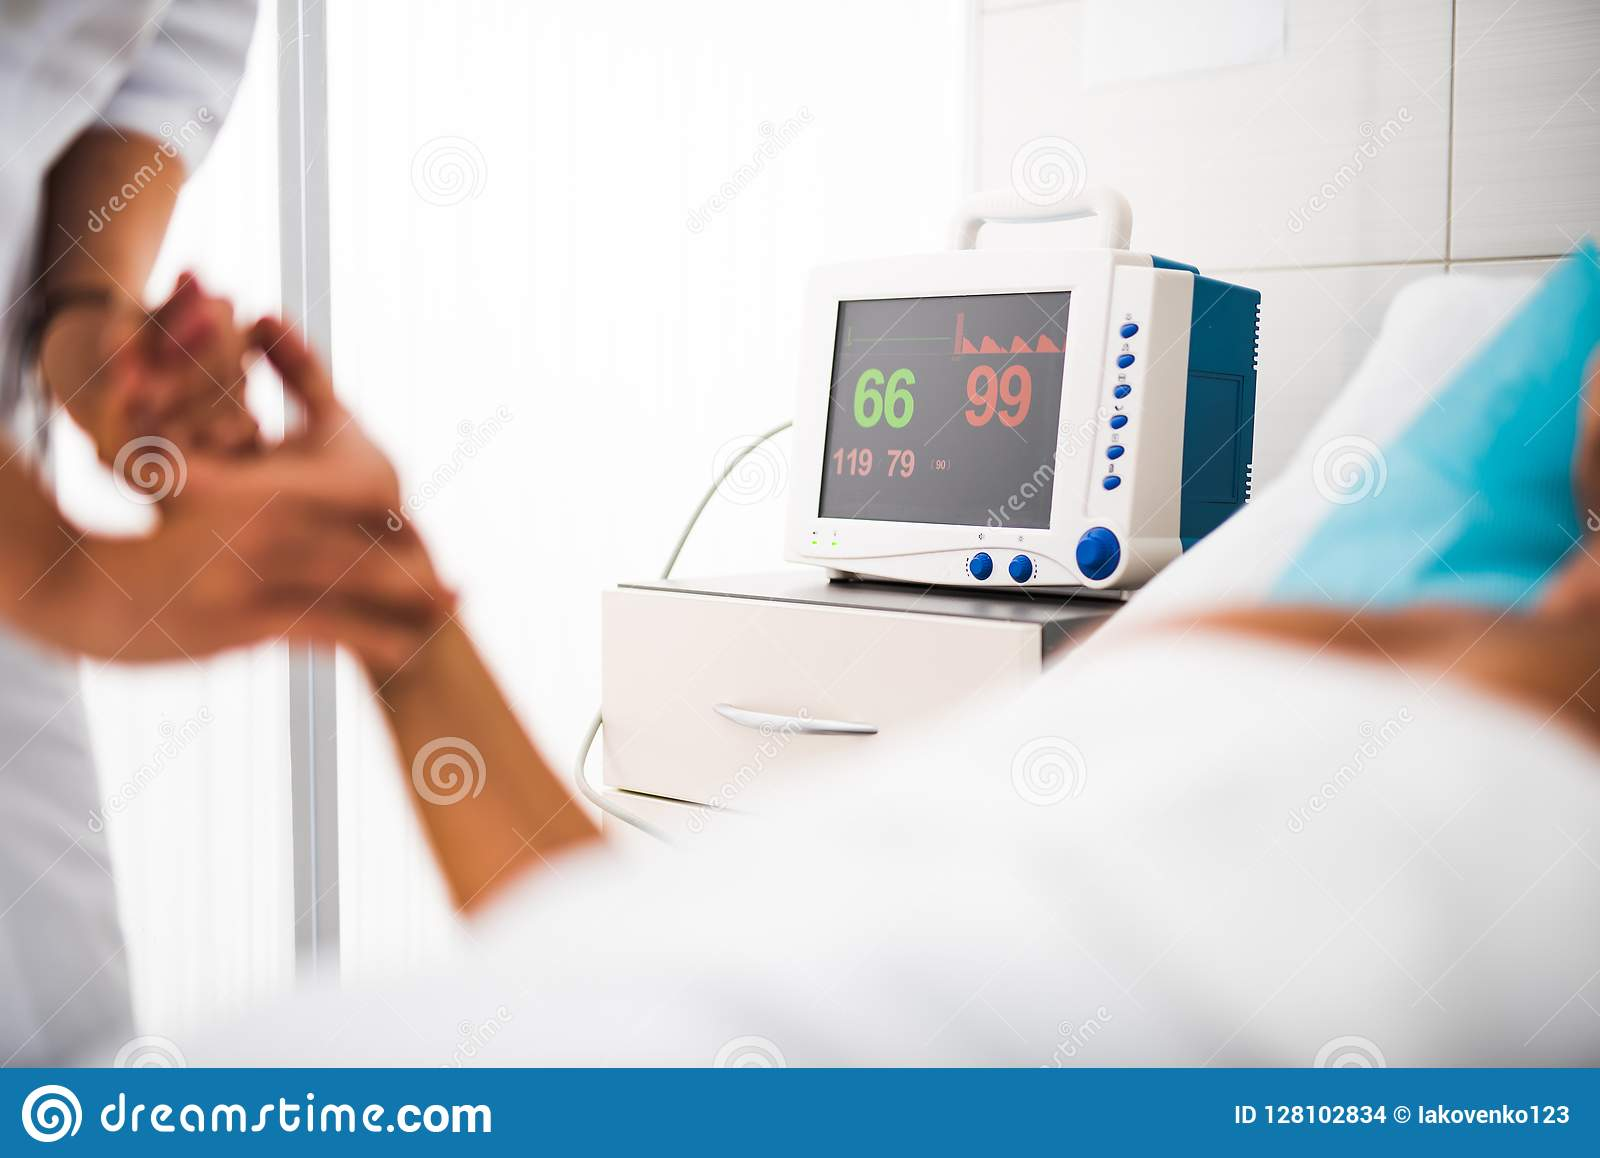 Monitor Of Heart Rate Measuring Equipment In Hospital Room ...